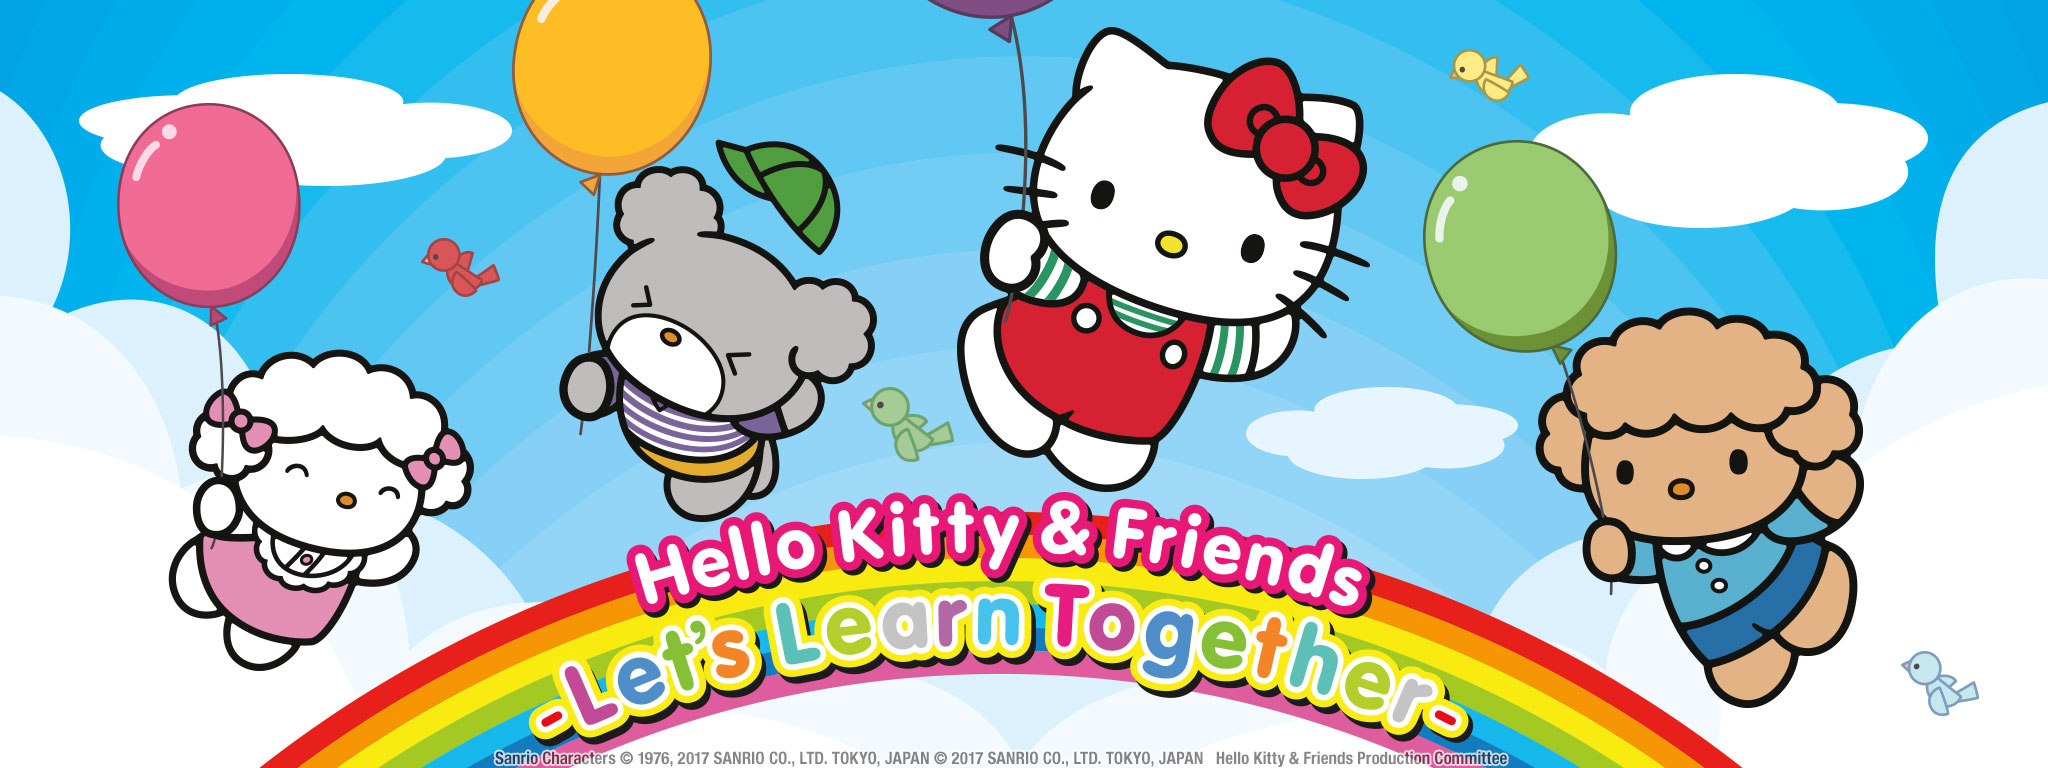 Hello Kitty & Friends - Let's Learn Together